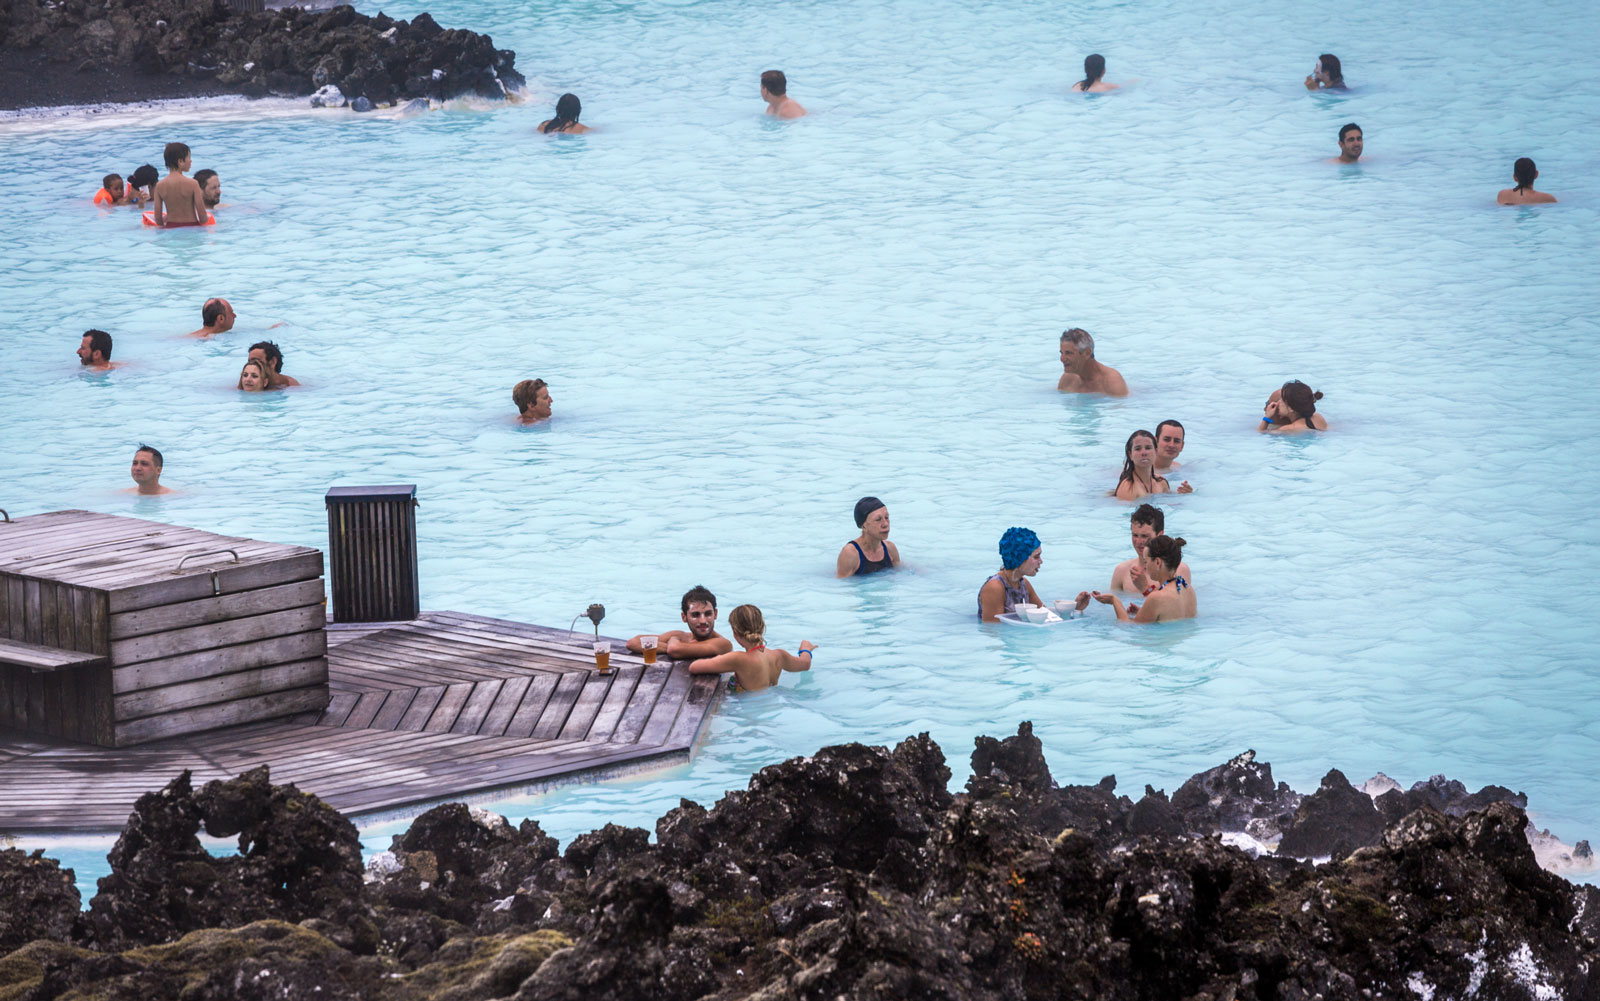 Lagoon Bar in Blue Lagoon, Iceland